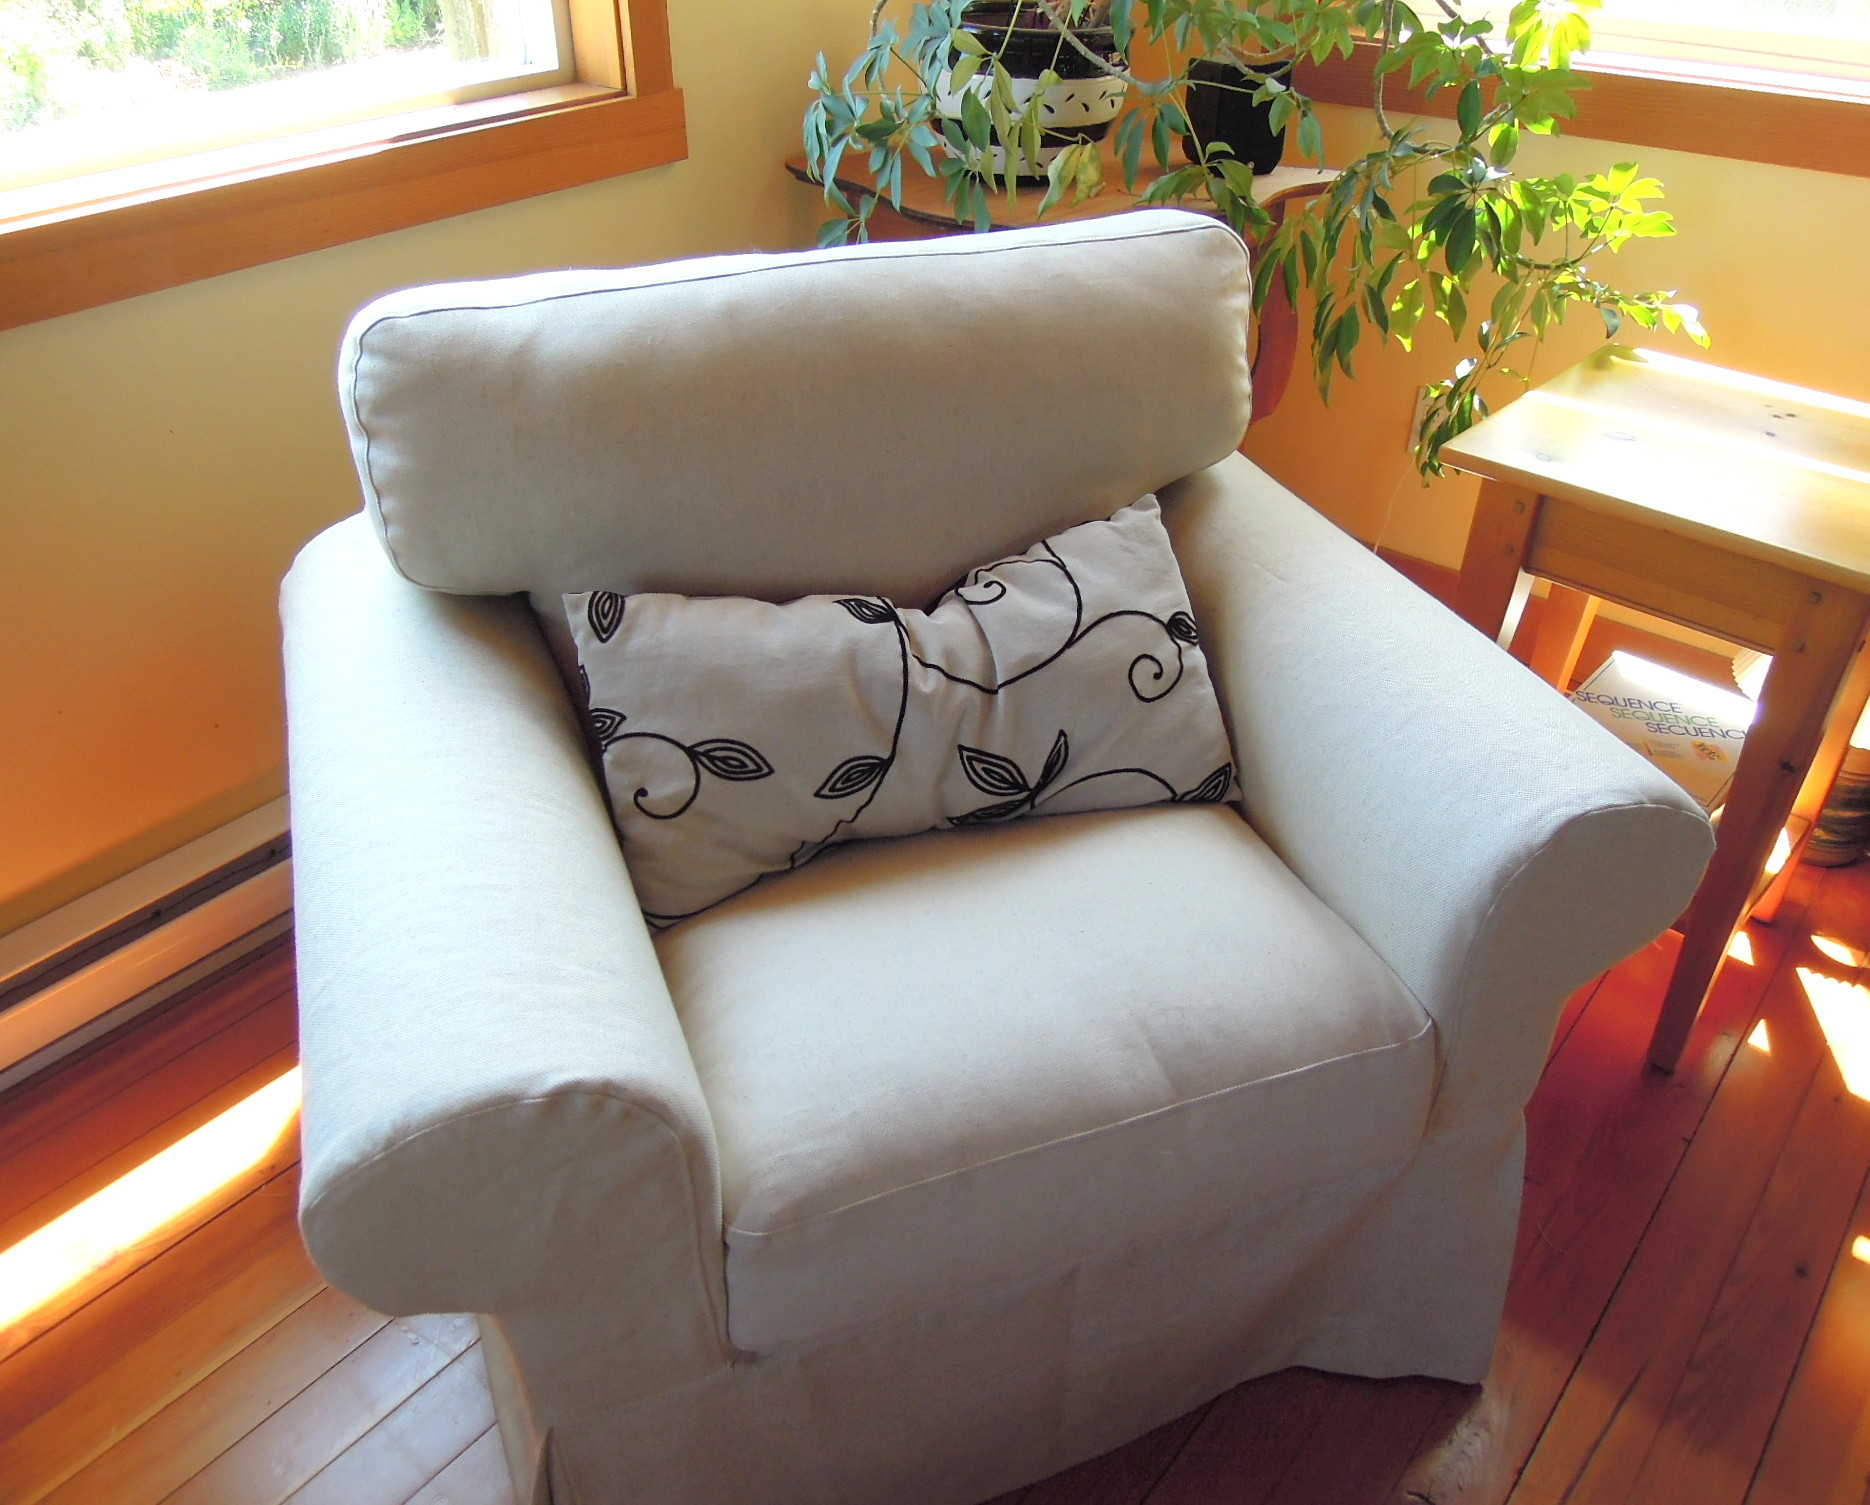 ikea usa chair covers eames molded wood side nikkidesigns organic soft furnishings and gifts page 2